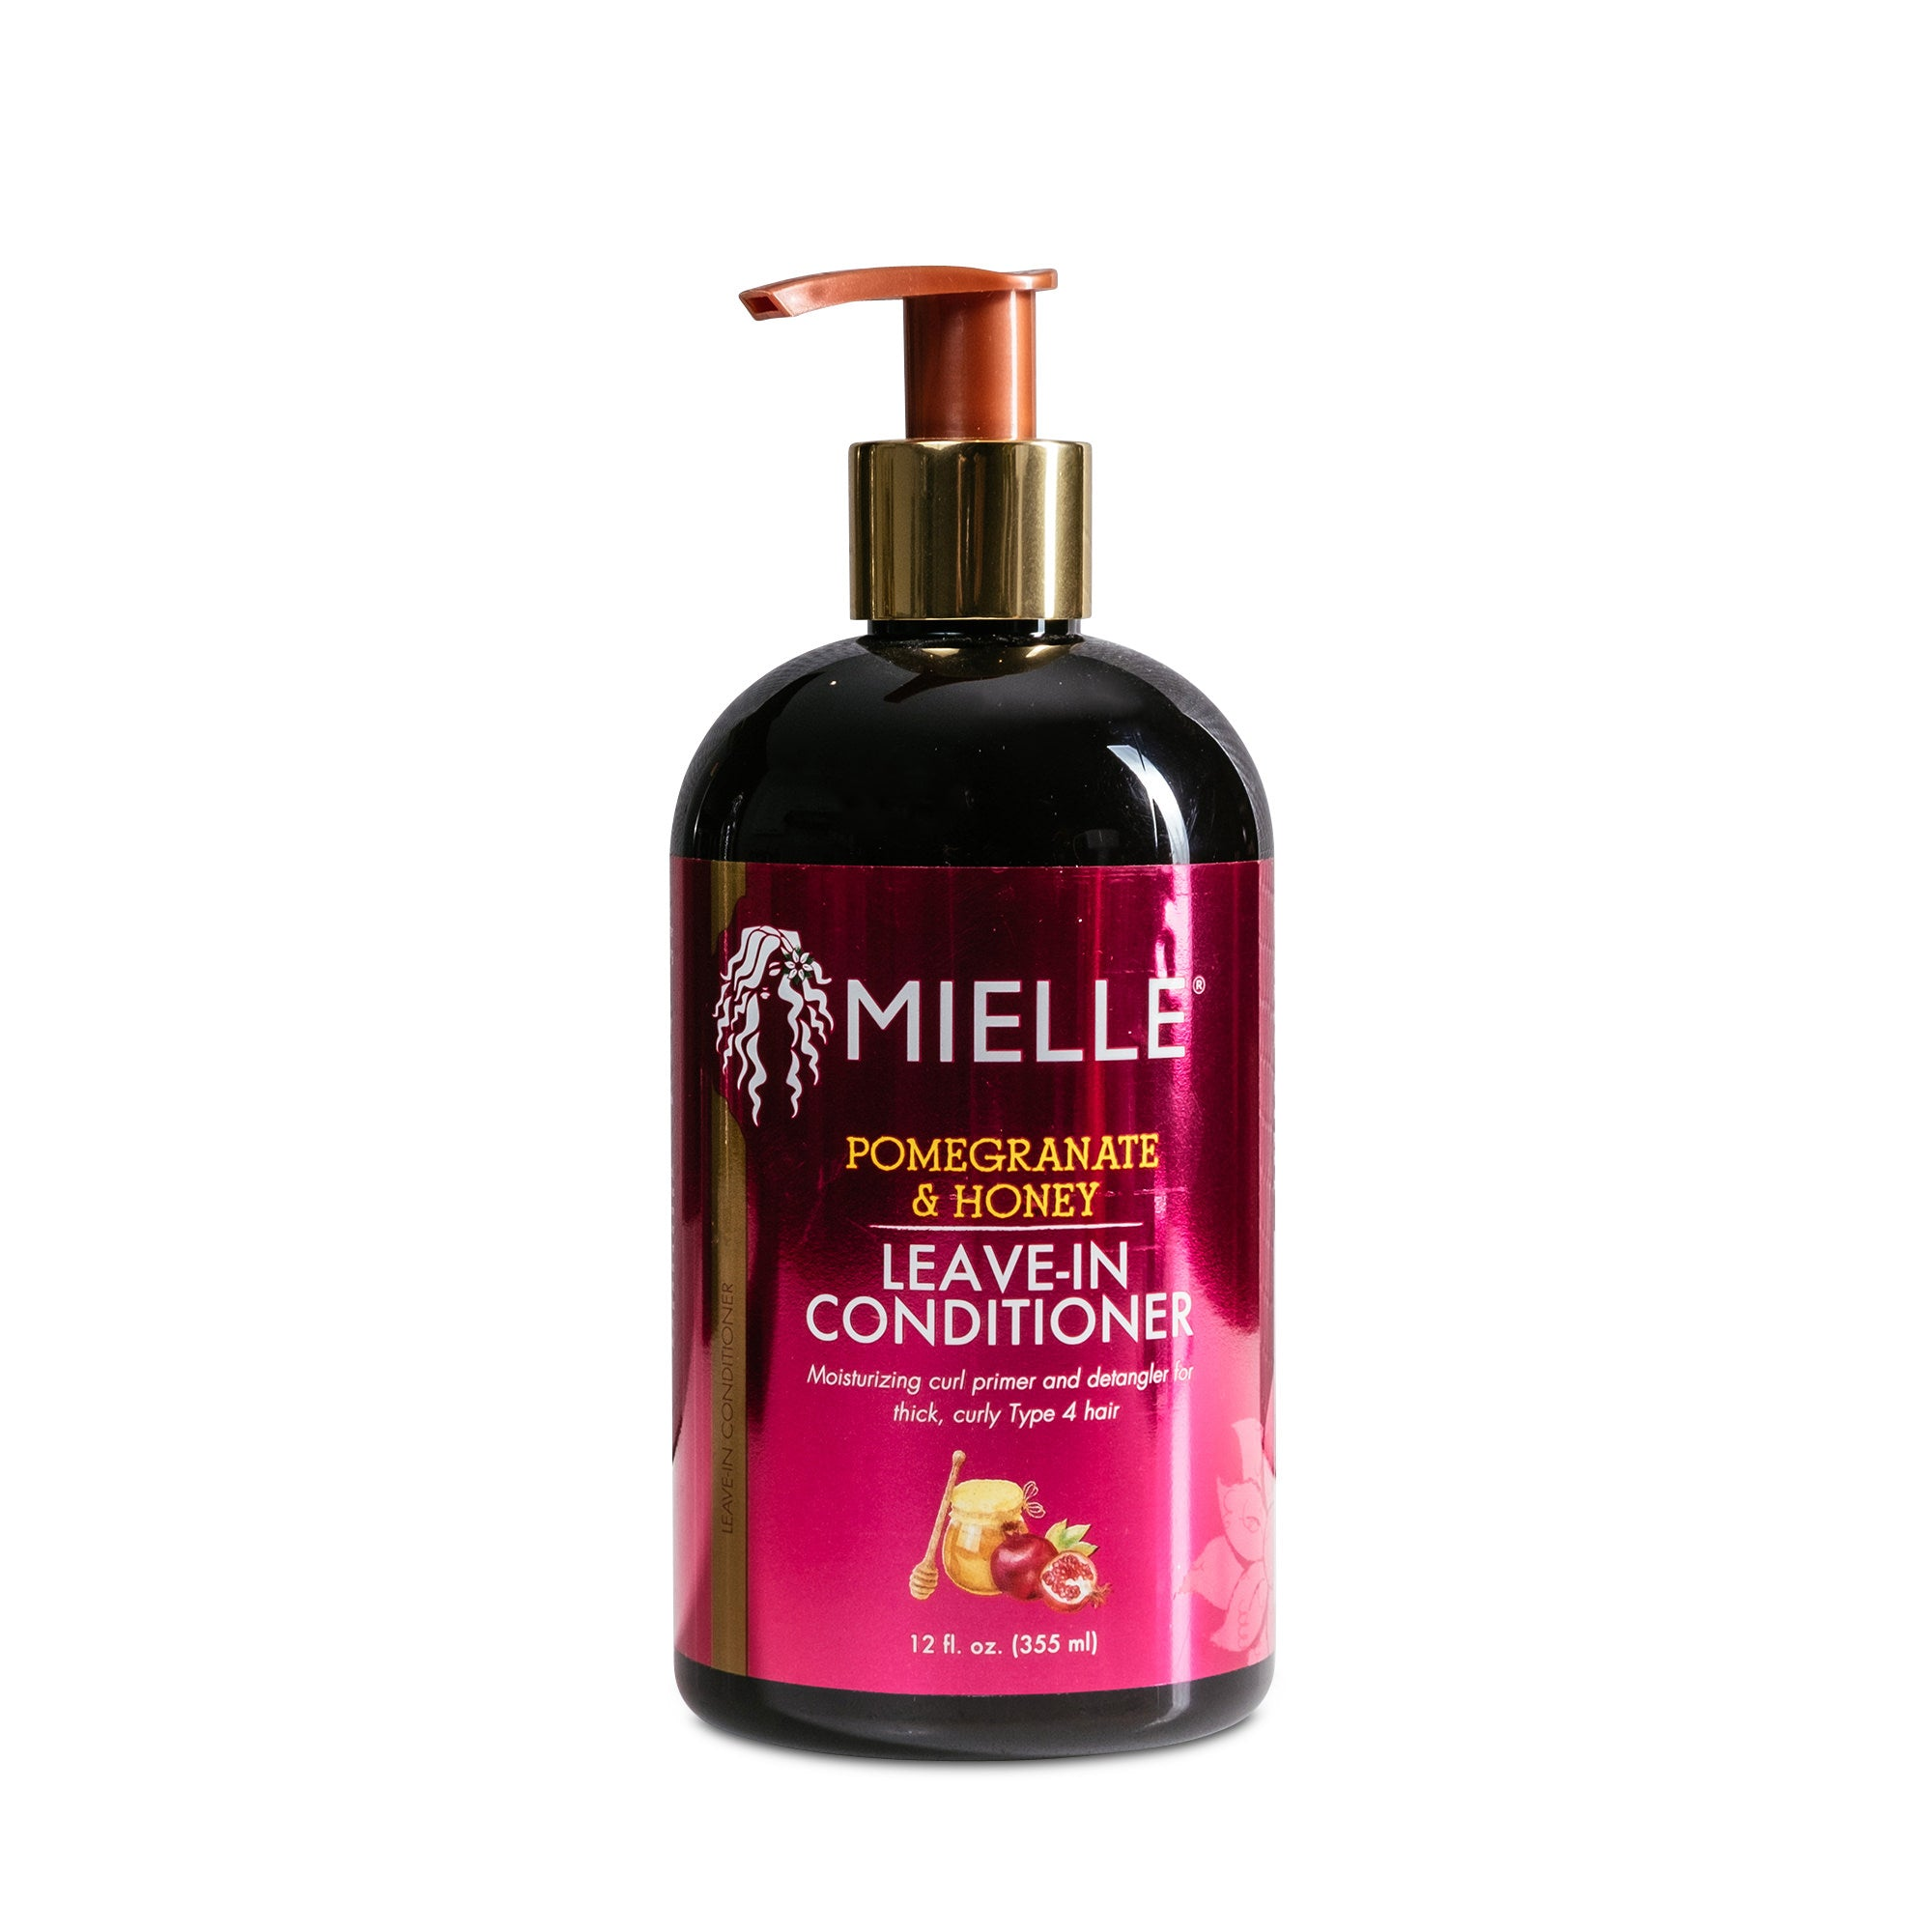 Mielle Organics Pomegranate & Honey Leave-In Conditioner - 12 fl. oz